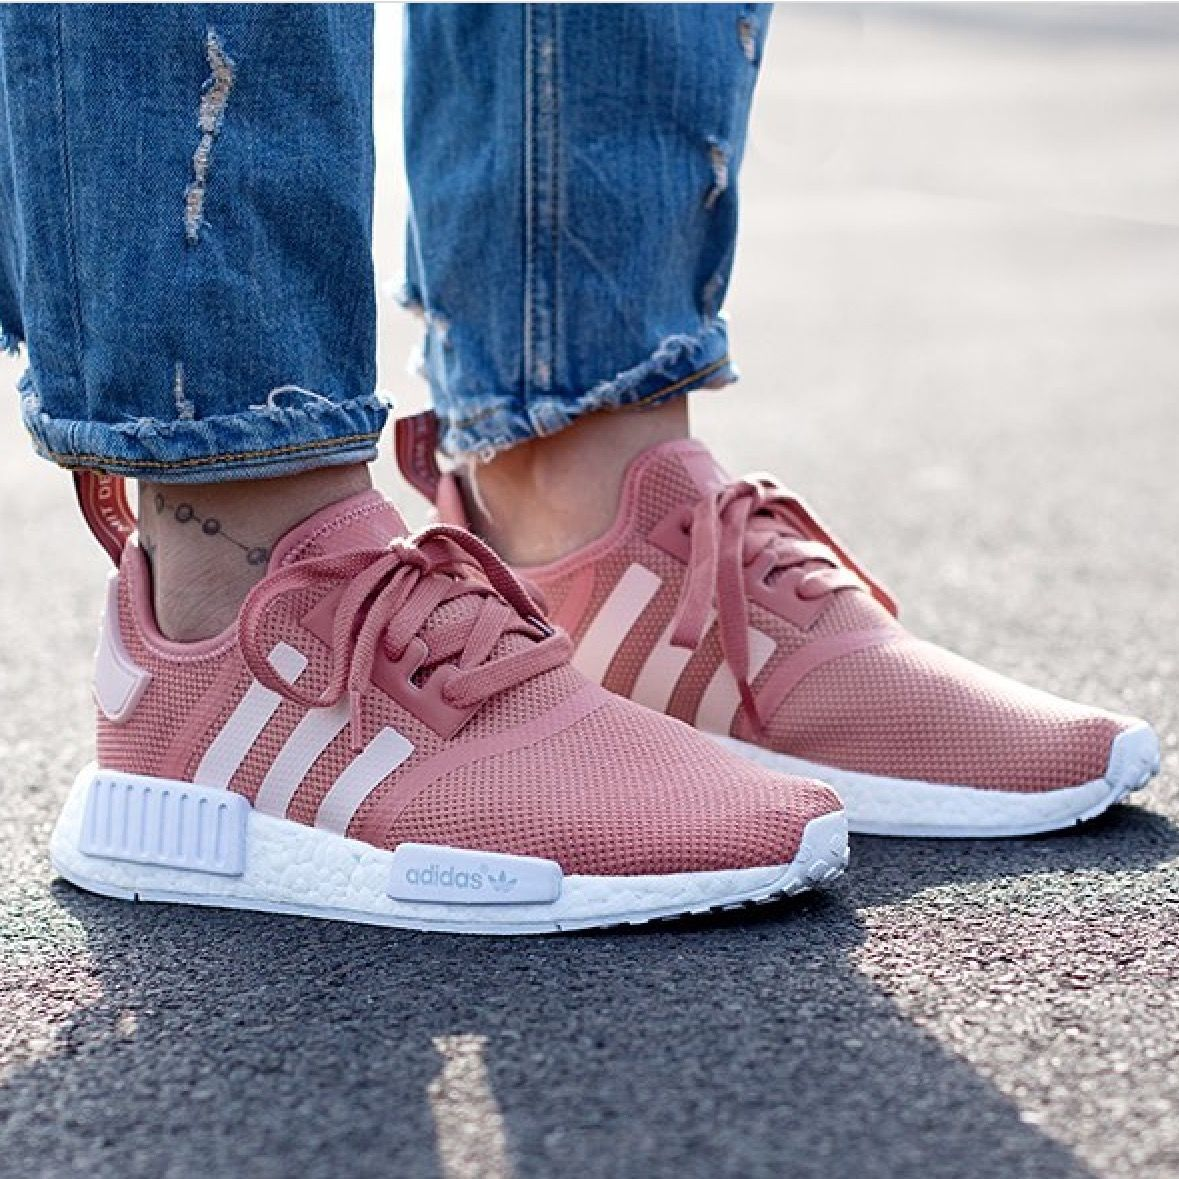 info for 8b75e 27f0e adidas NMD Runner  Five Women s Colorways   Sho0z   Pinterest   Adidas  shoes women, Adidas nmd and Fashion